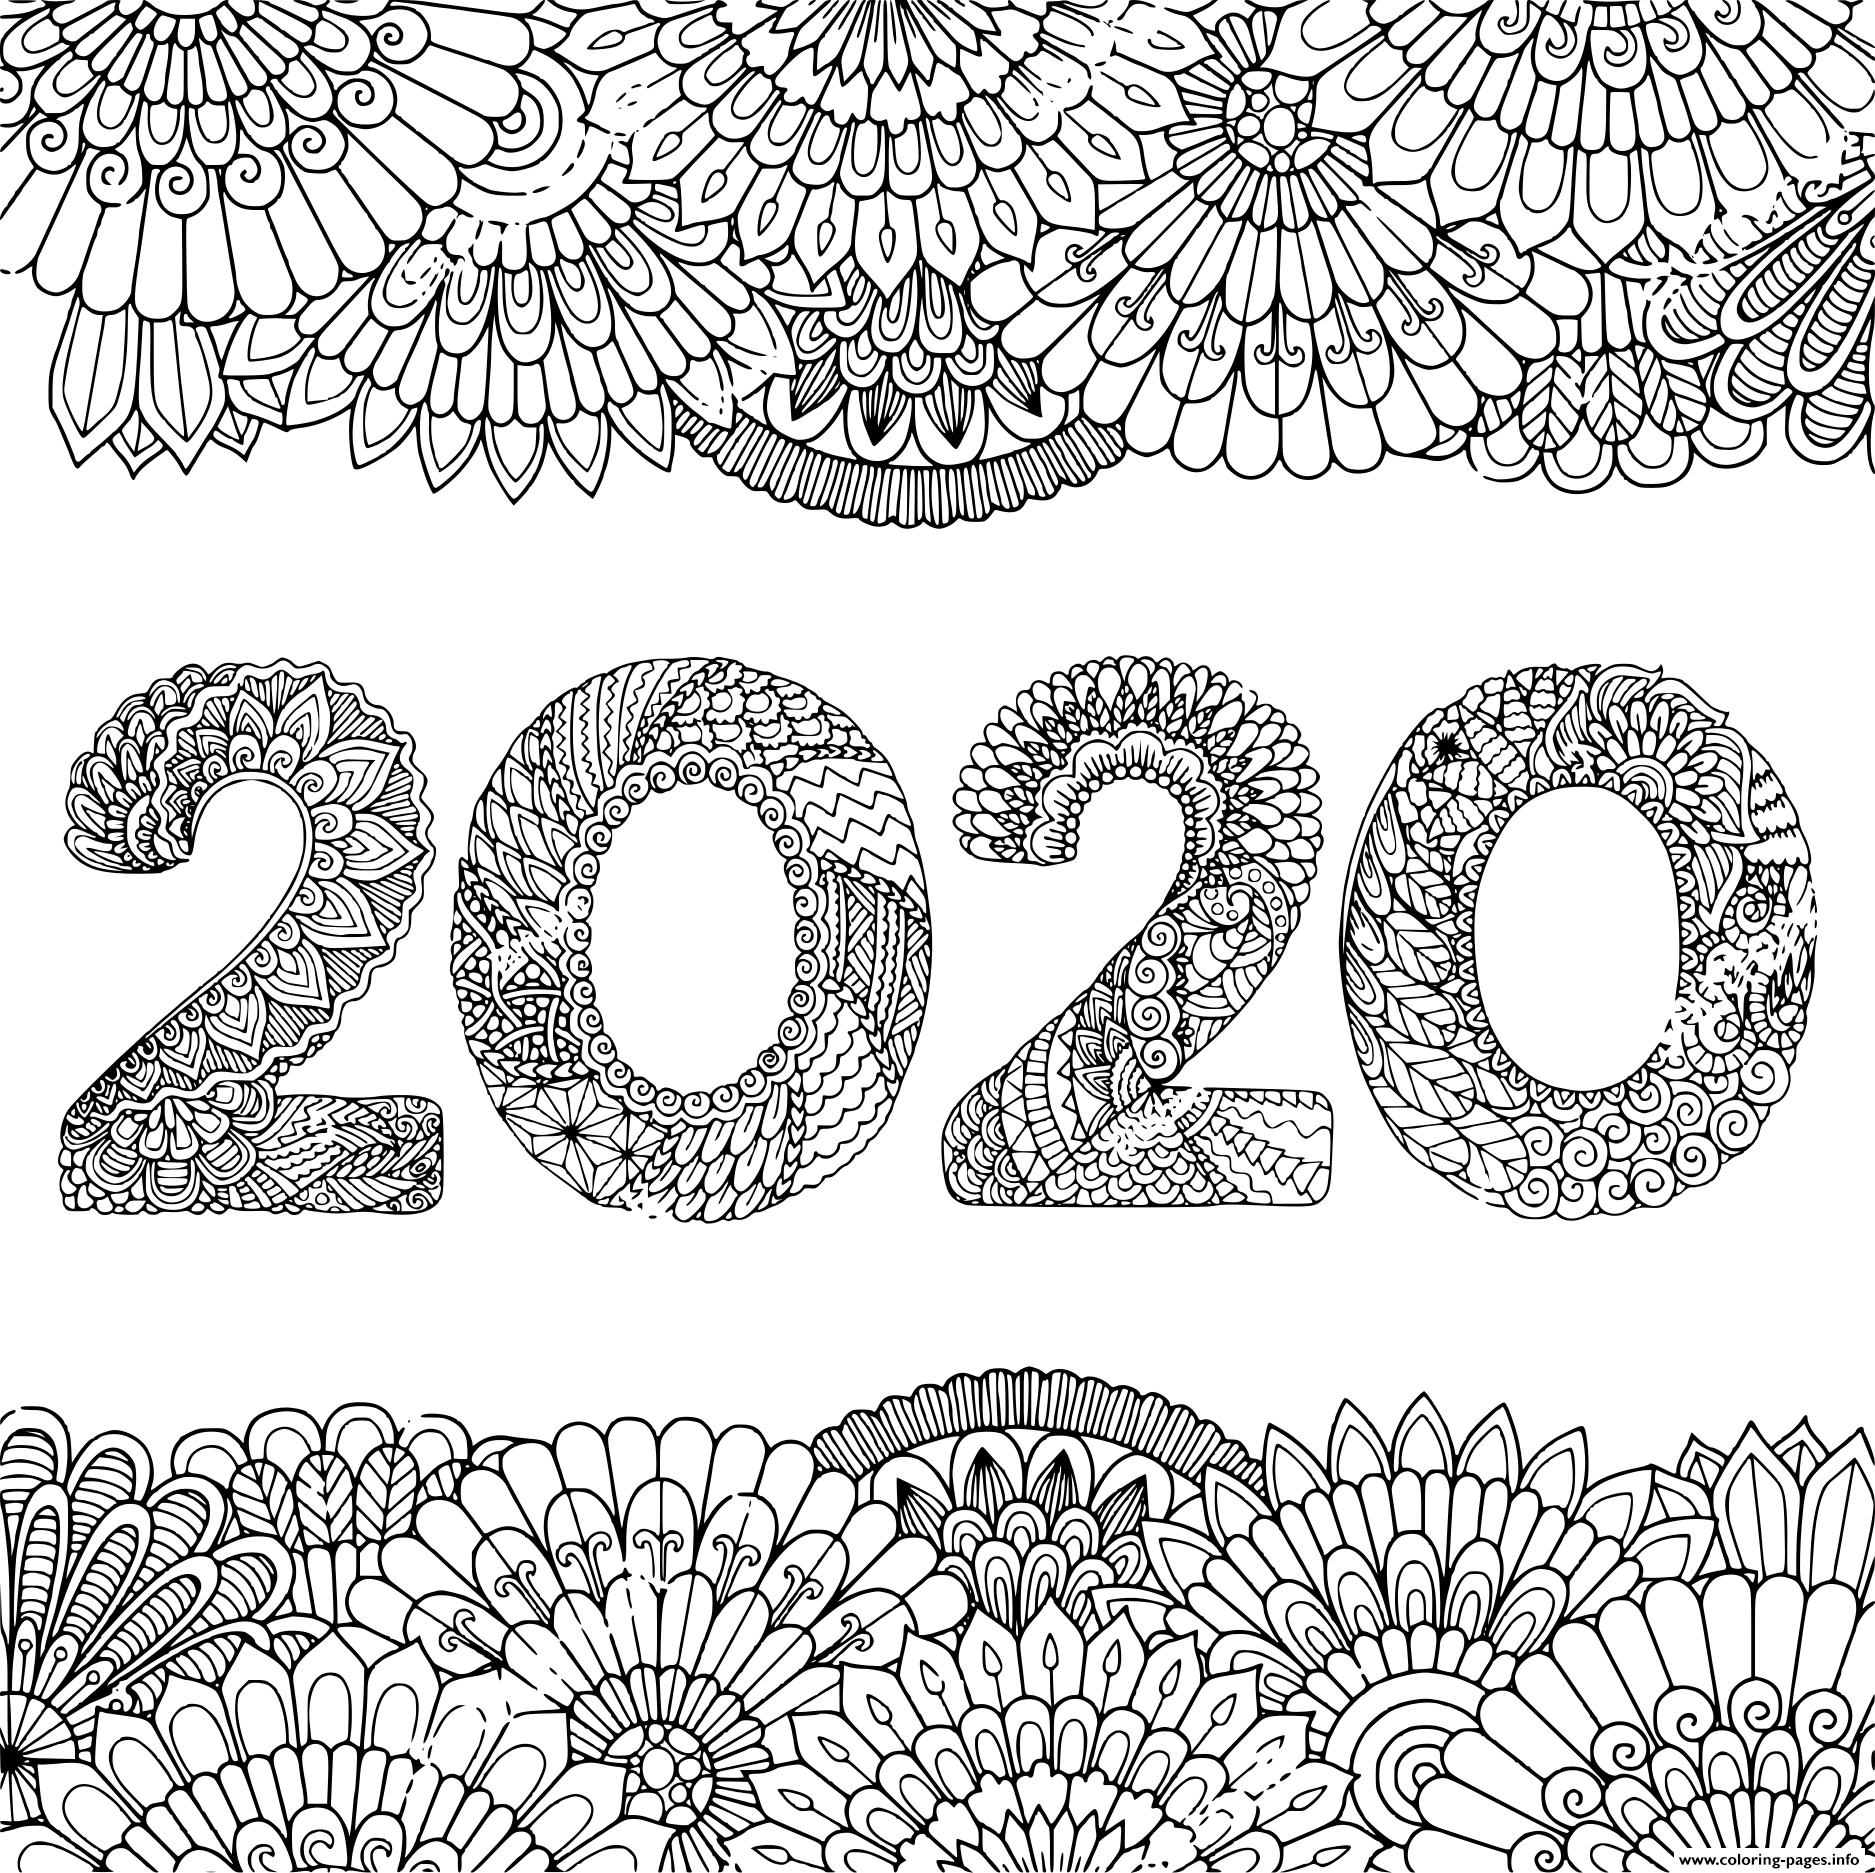 chinese new year coloring pages 2020 rat zentangle coloring page 2020 chinese new year by pages new year chinese 2020 coloring